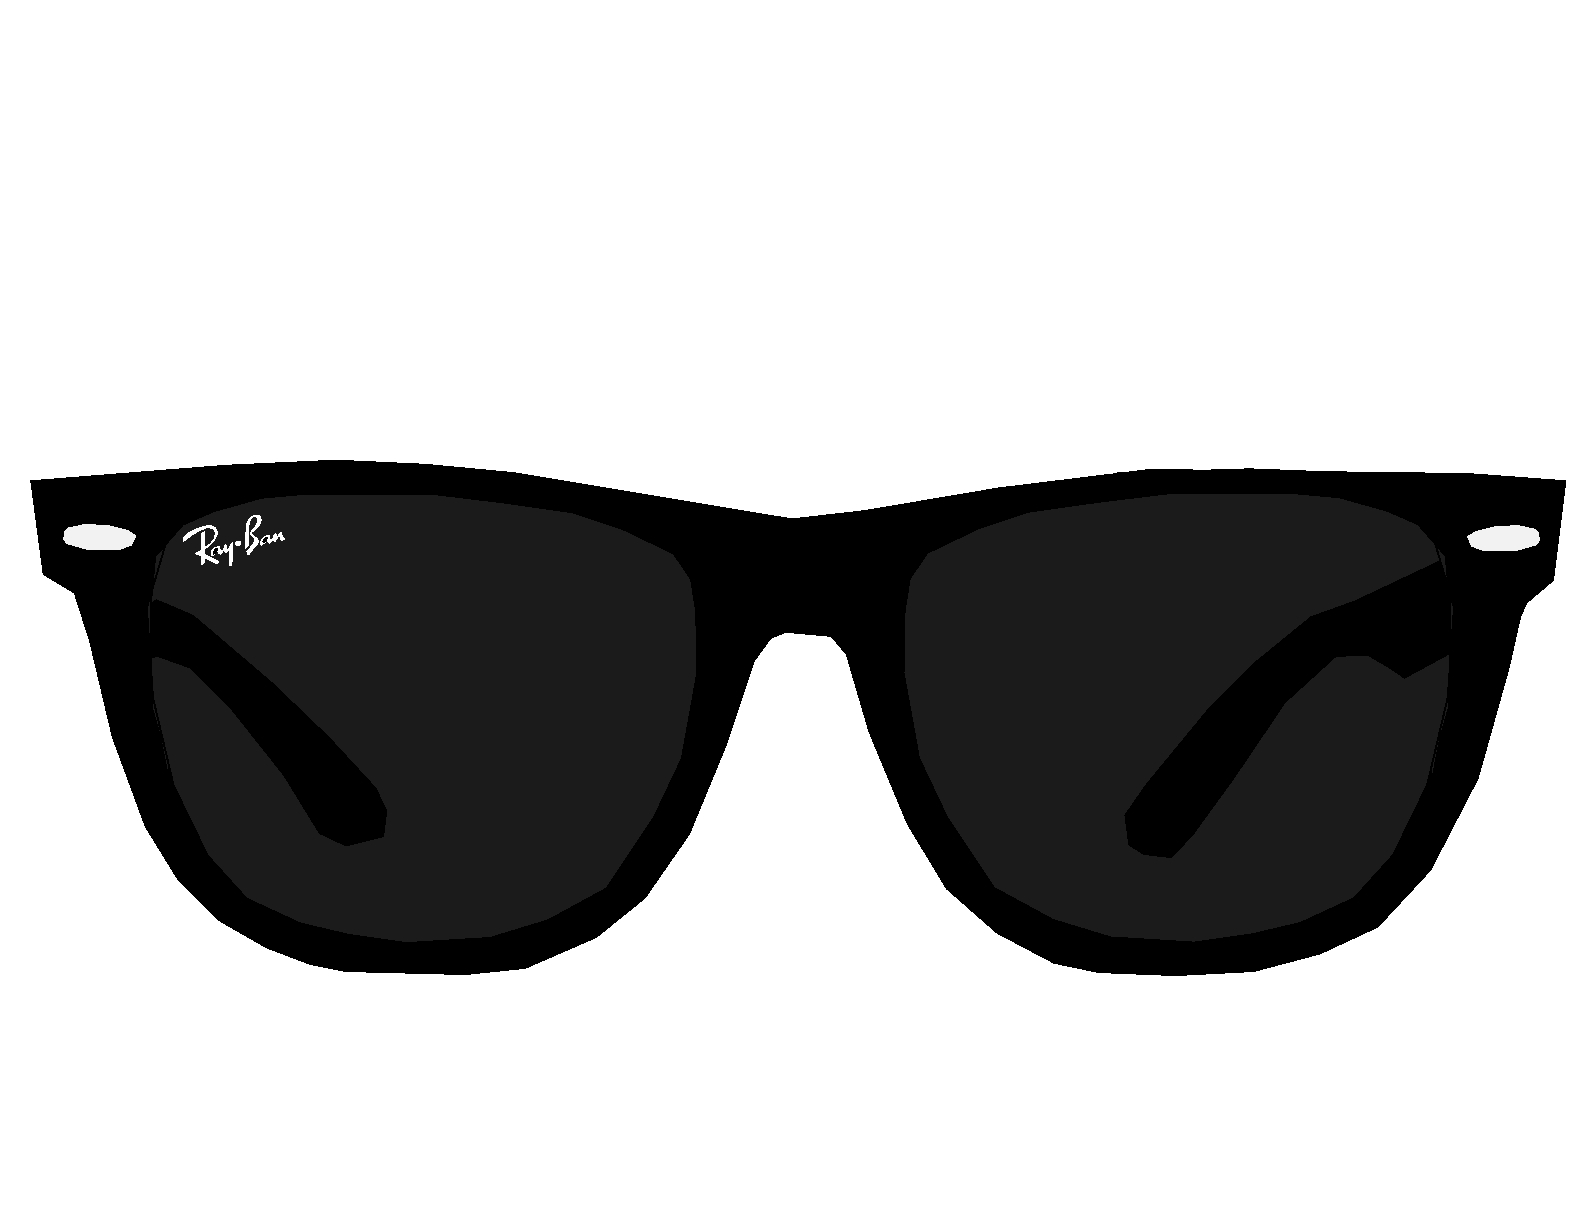 Ray ban clipart picture royalty free stock Free Cool Cartoon Glasses, Download Free Clip Art, Free Clip Art on ... picture royalty free stock